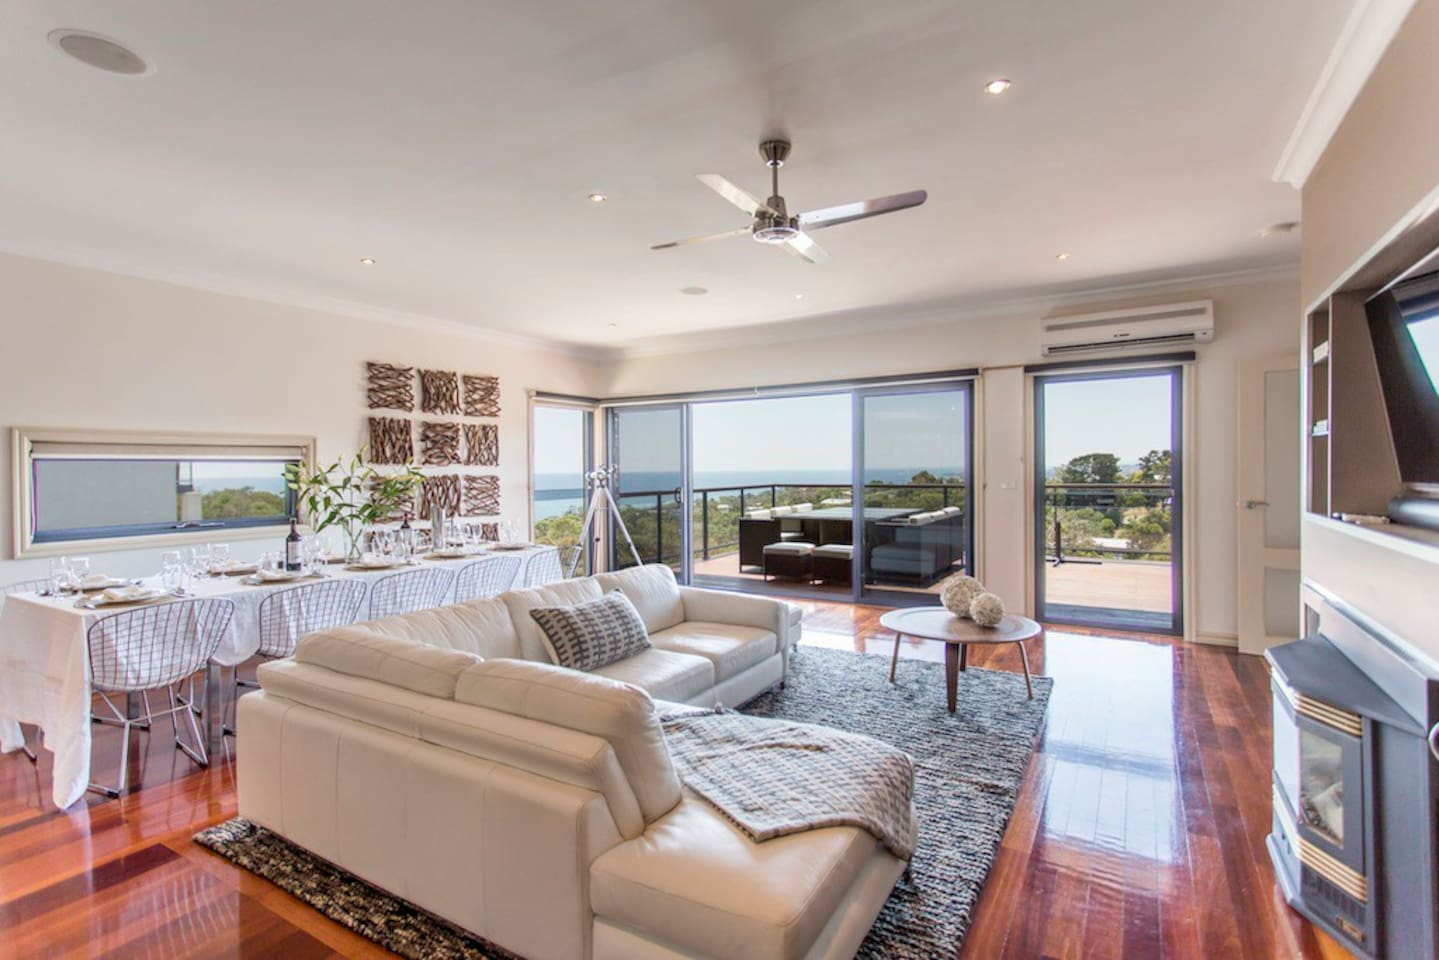 Level 1 Living Room. Comfy Leather Sofa, wool/silk throw rugs, Dining table seats up to 12, Smart TV, access directly onto verandah.